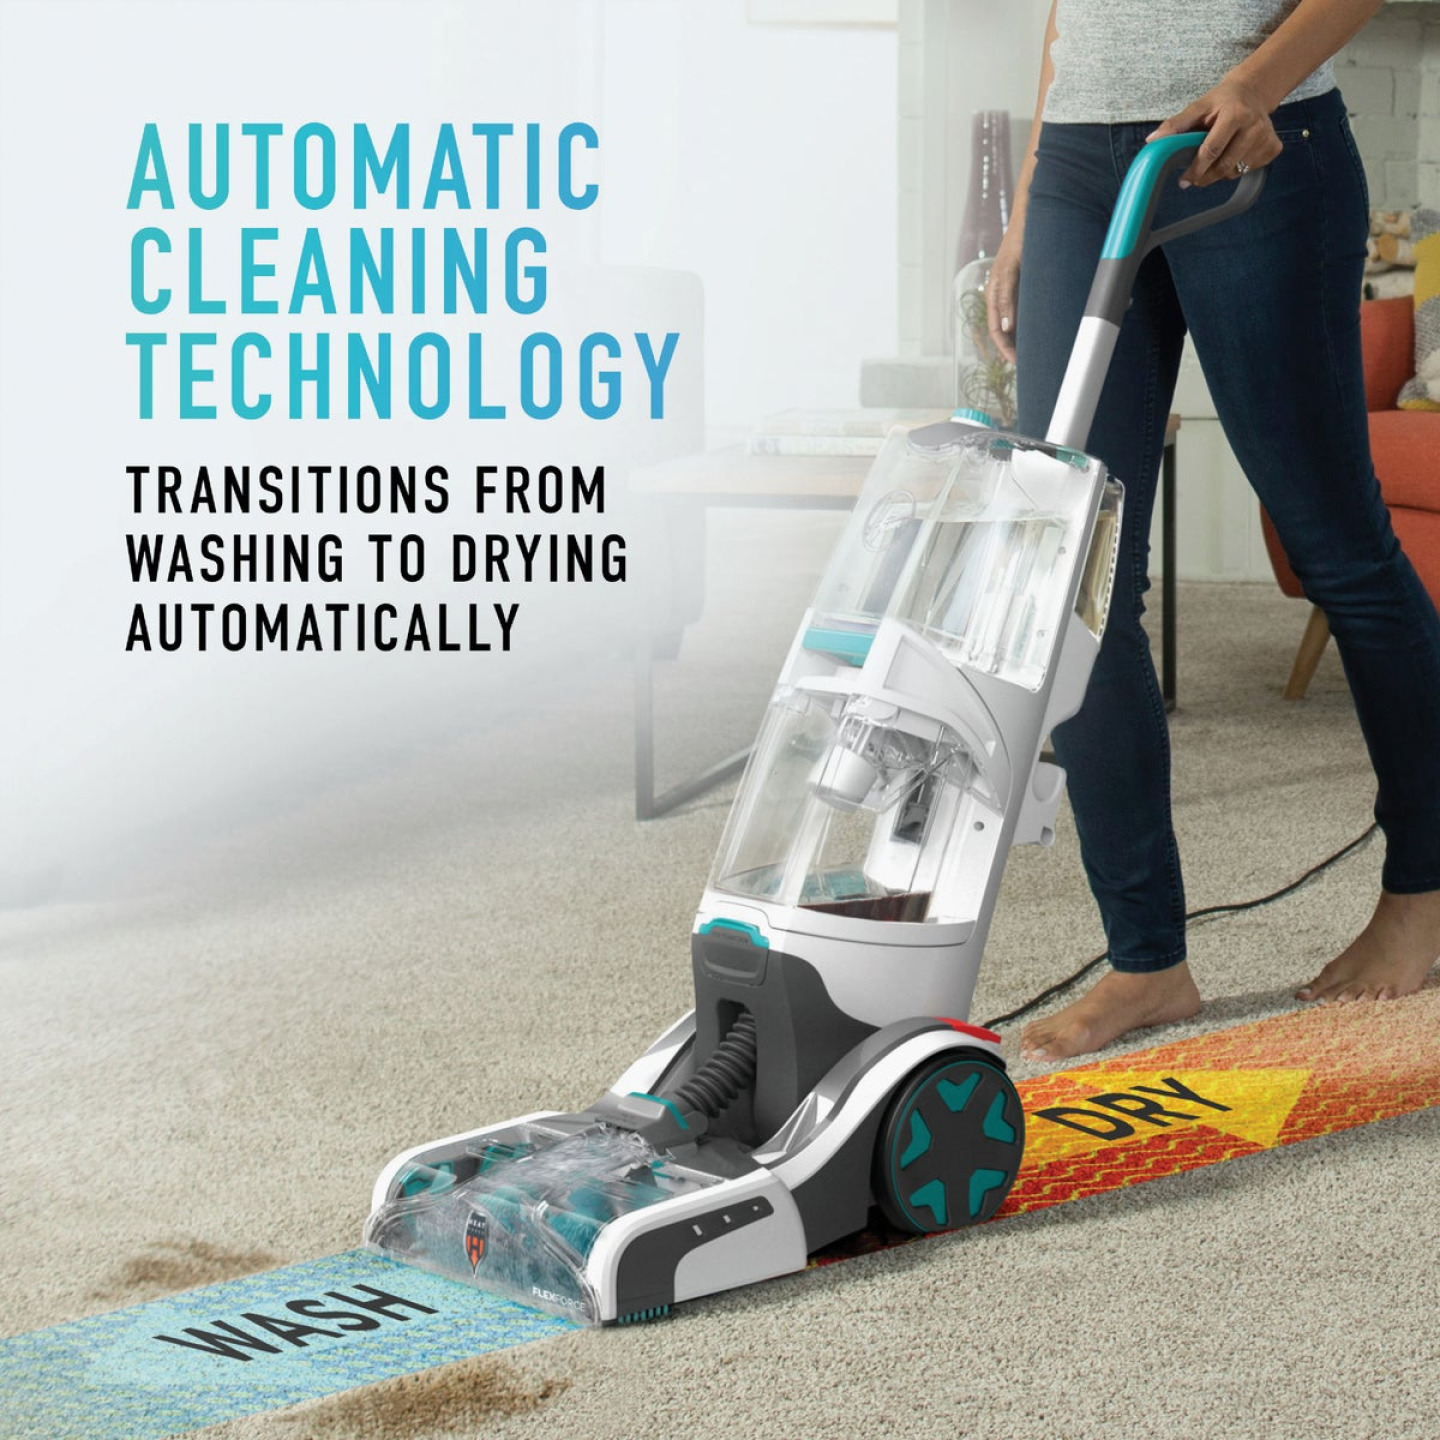 Hoover SmartWash+ Automatic Carpet Cleaner Image 2